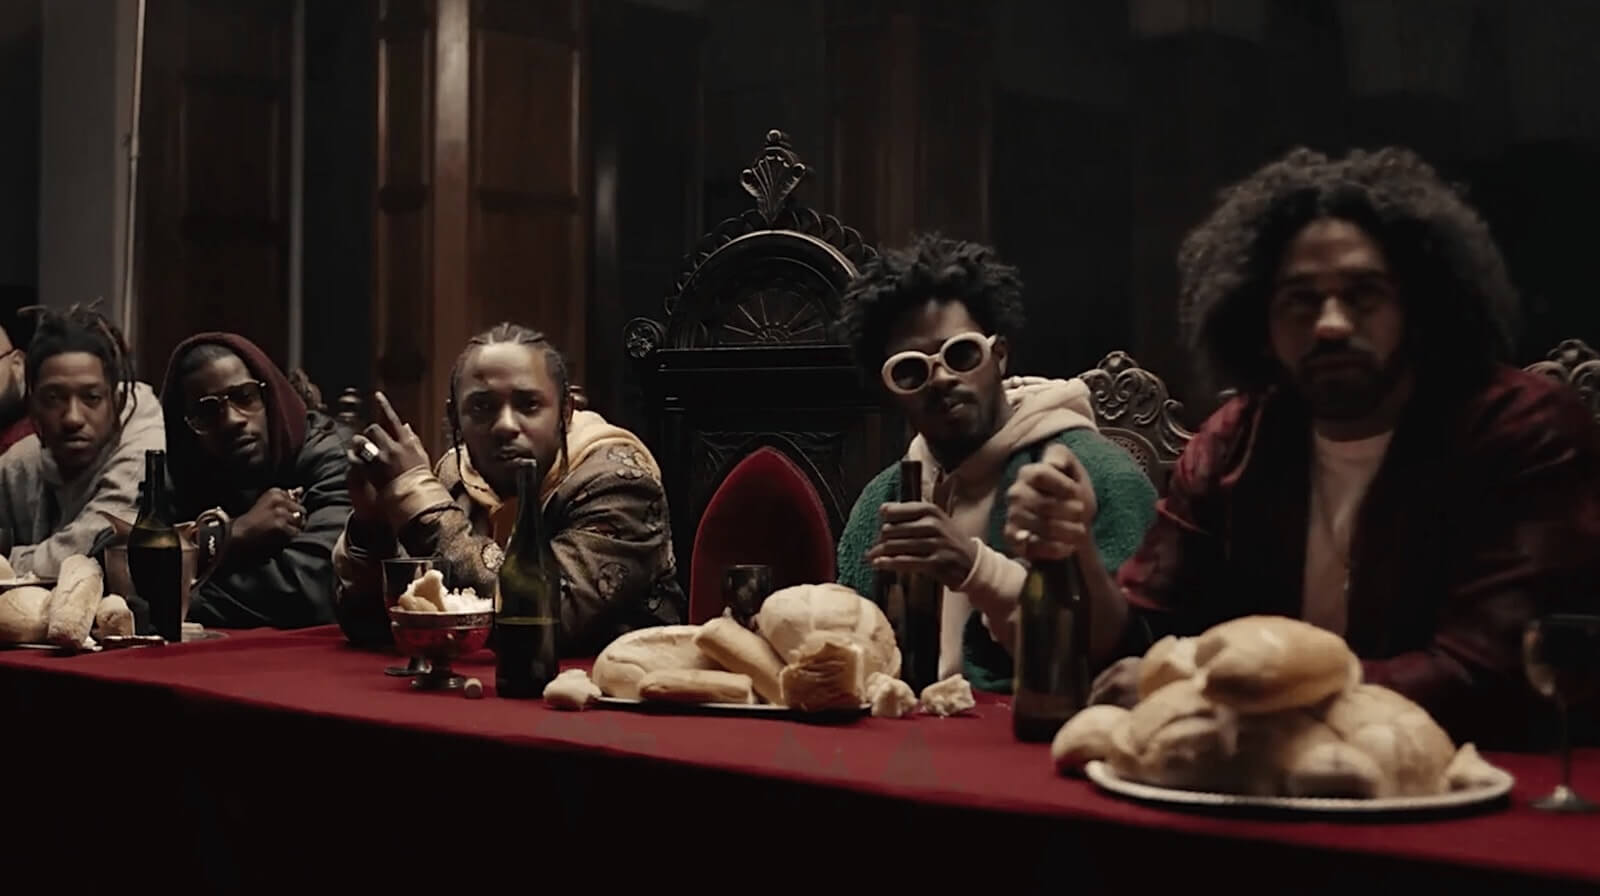 Best Music Videos for Video Creatives - Kendrick Lamar - Humble 2